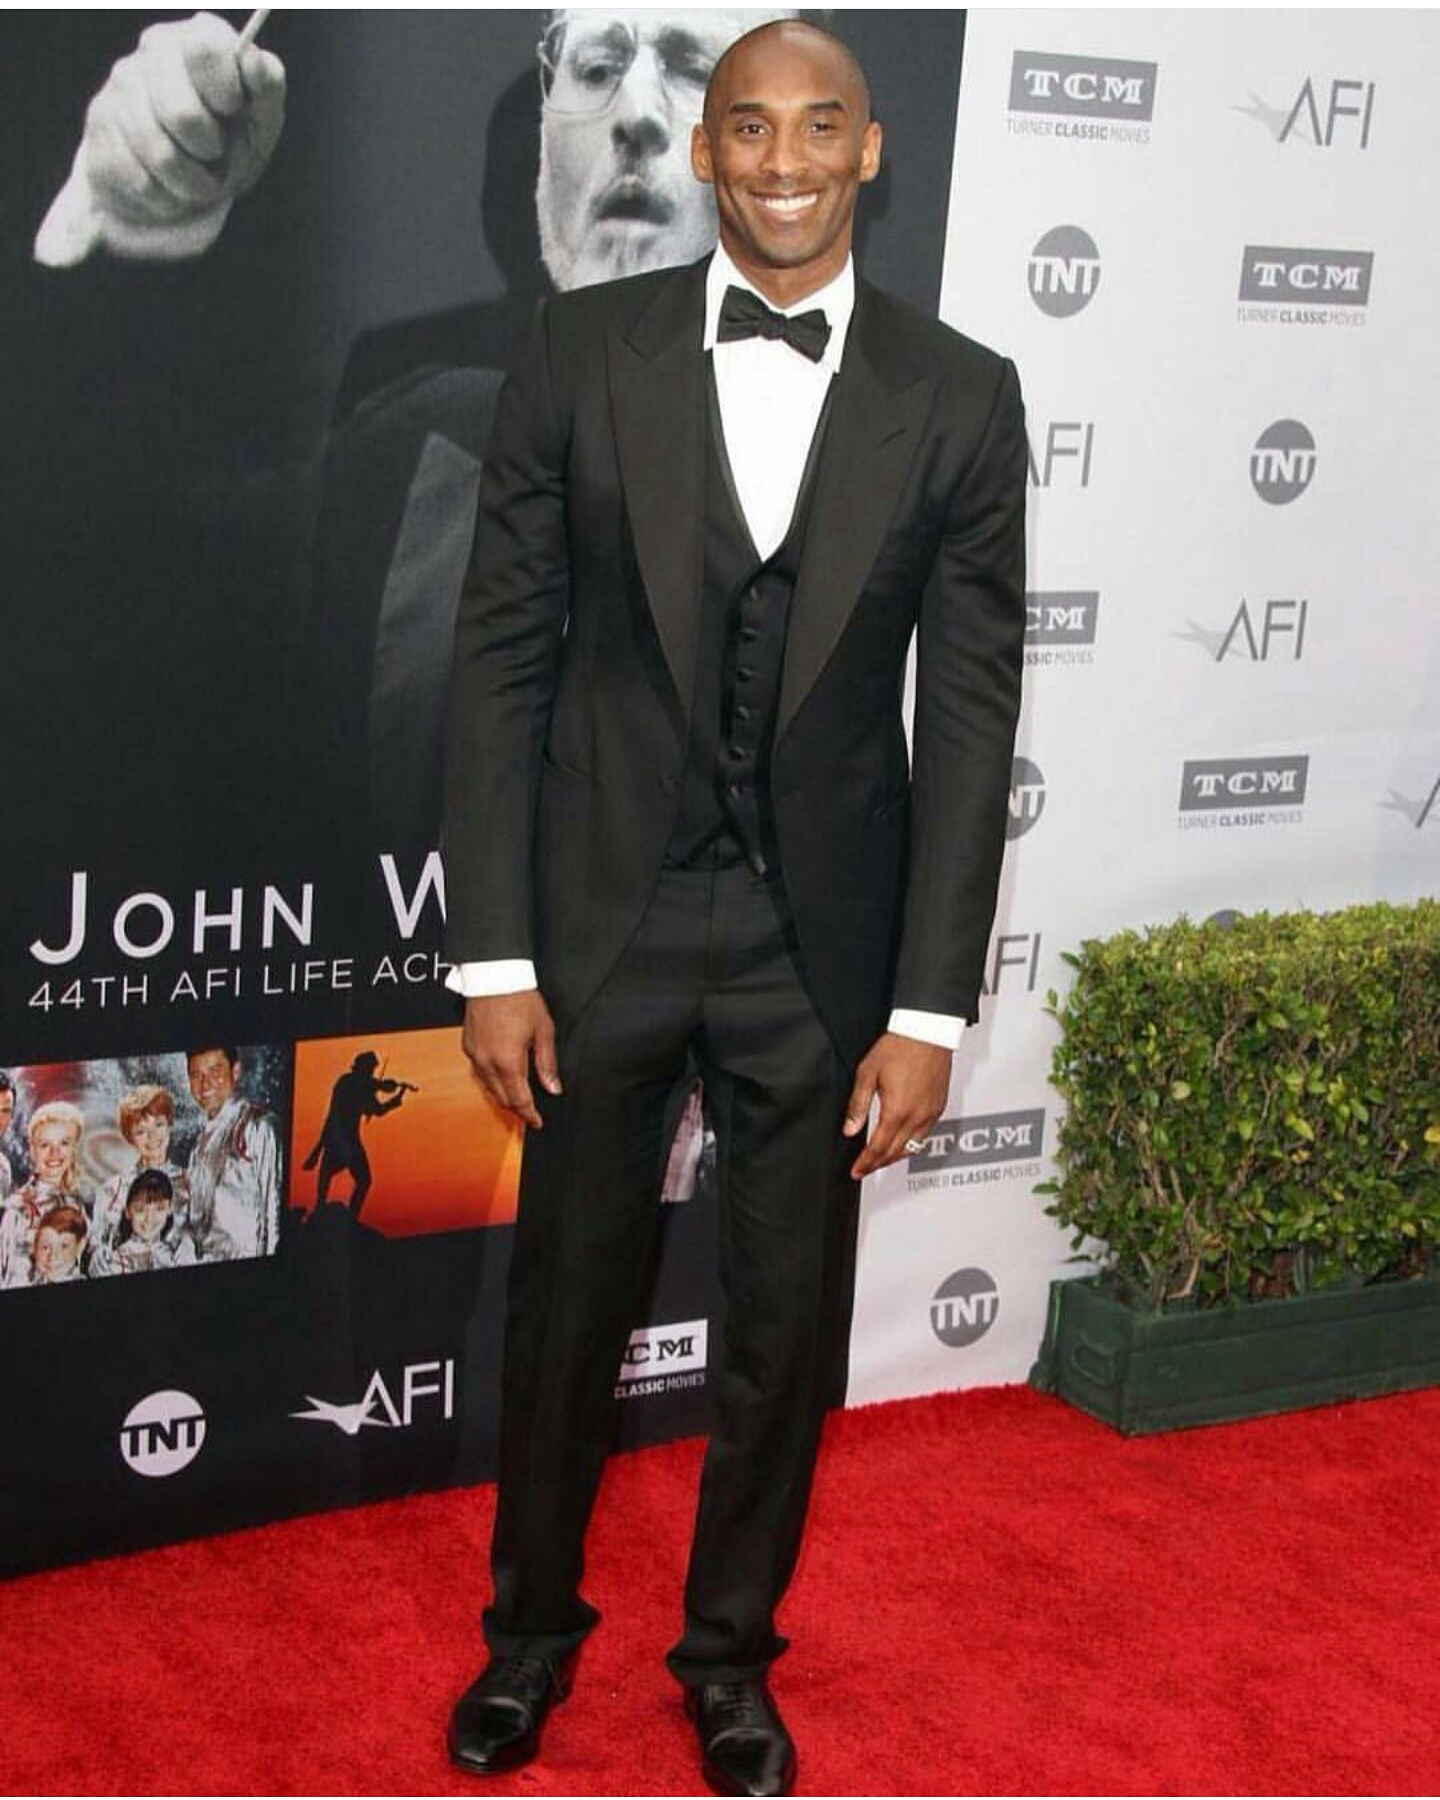 STYLE: Kobe Bryant Wears Tuxedo For Red Carpet Event